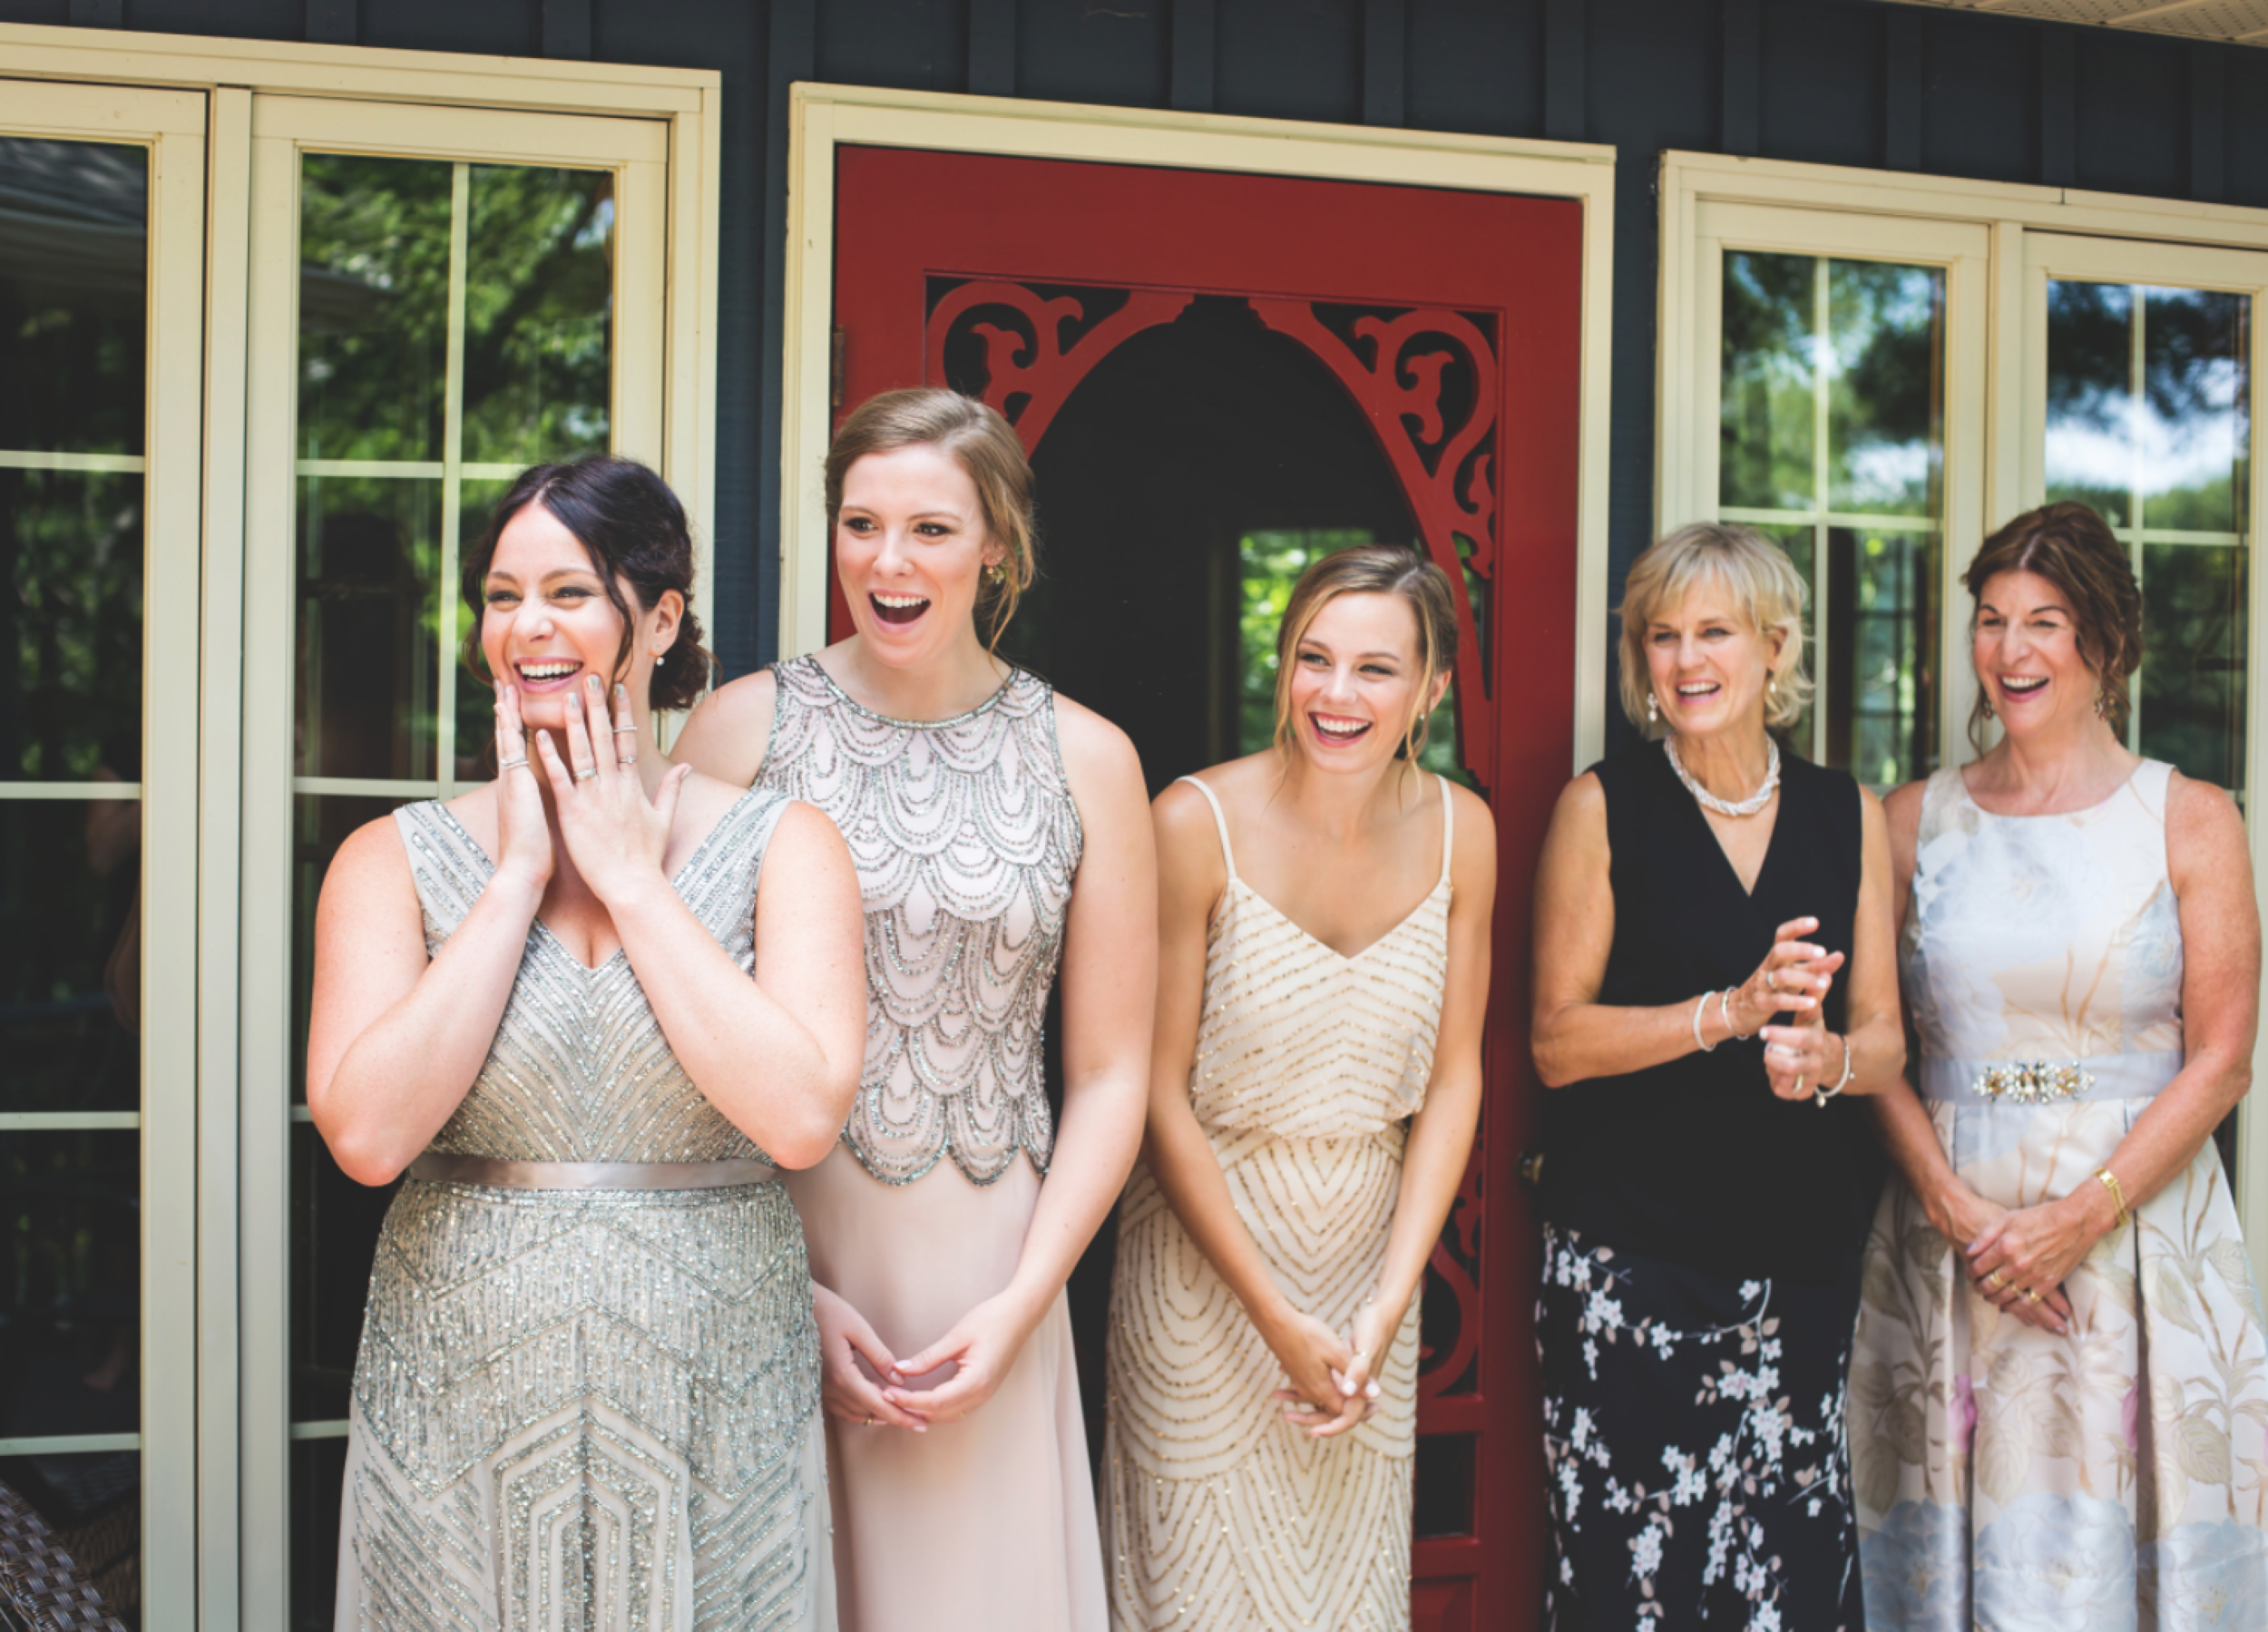 Wedding-Photos-Muskoka-Clevelands-House-Photographer-Wedding-Hamilton-GTA-Niagara-Oakville-Moments-by-Lauren-Photography-Photo-Image-10.png